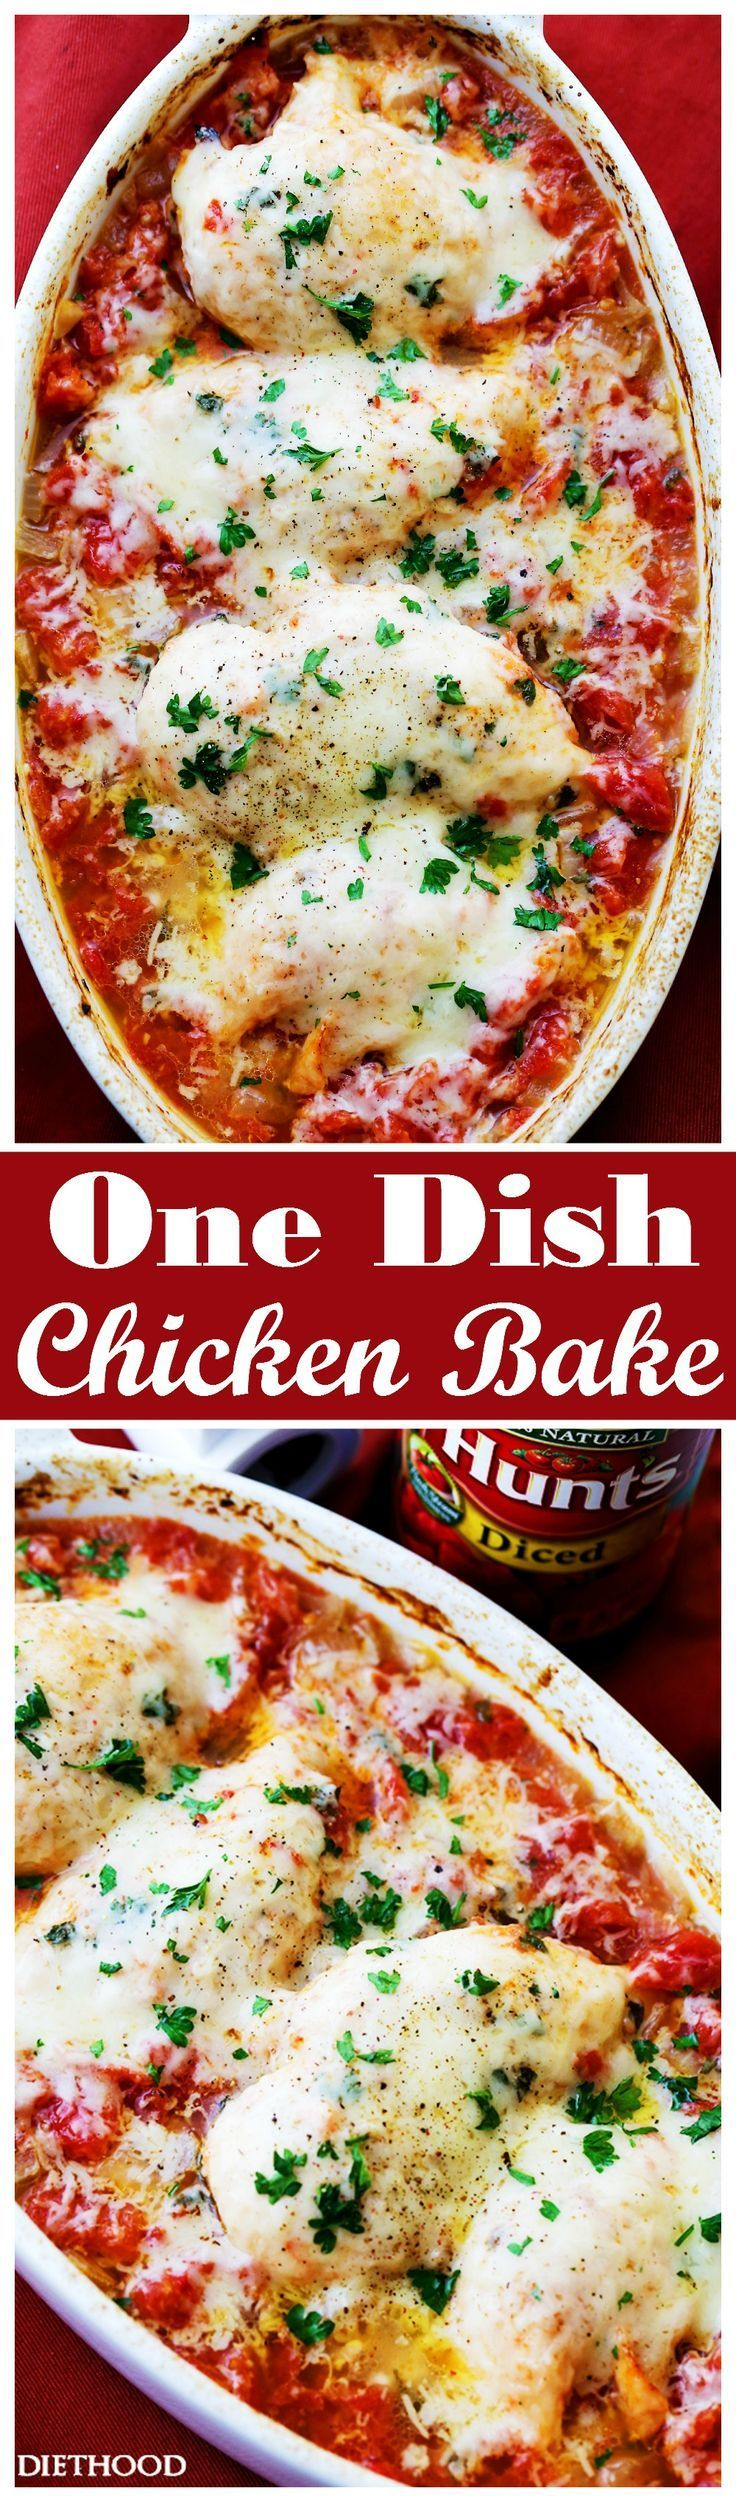 One Dish Chicken Bake - Flavorful chicken baked on a bed of tomatoes and covered in cheese makes for a one-dish dinner the whole family will enjoy.